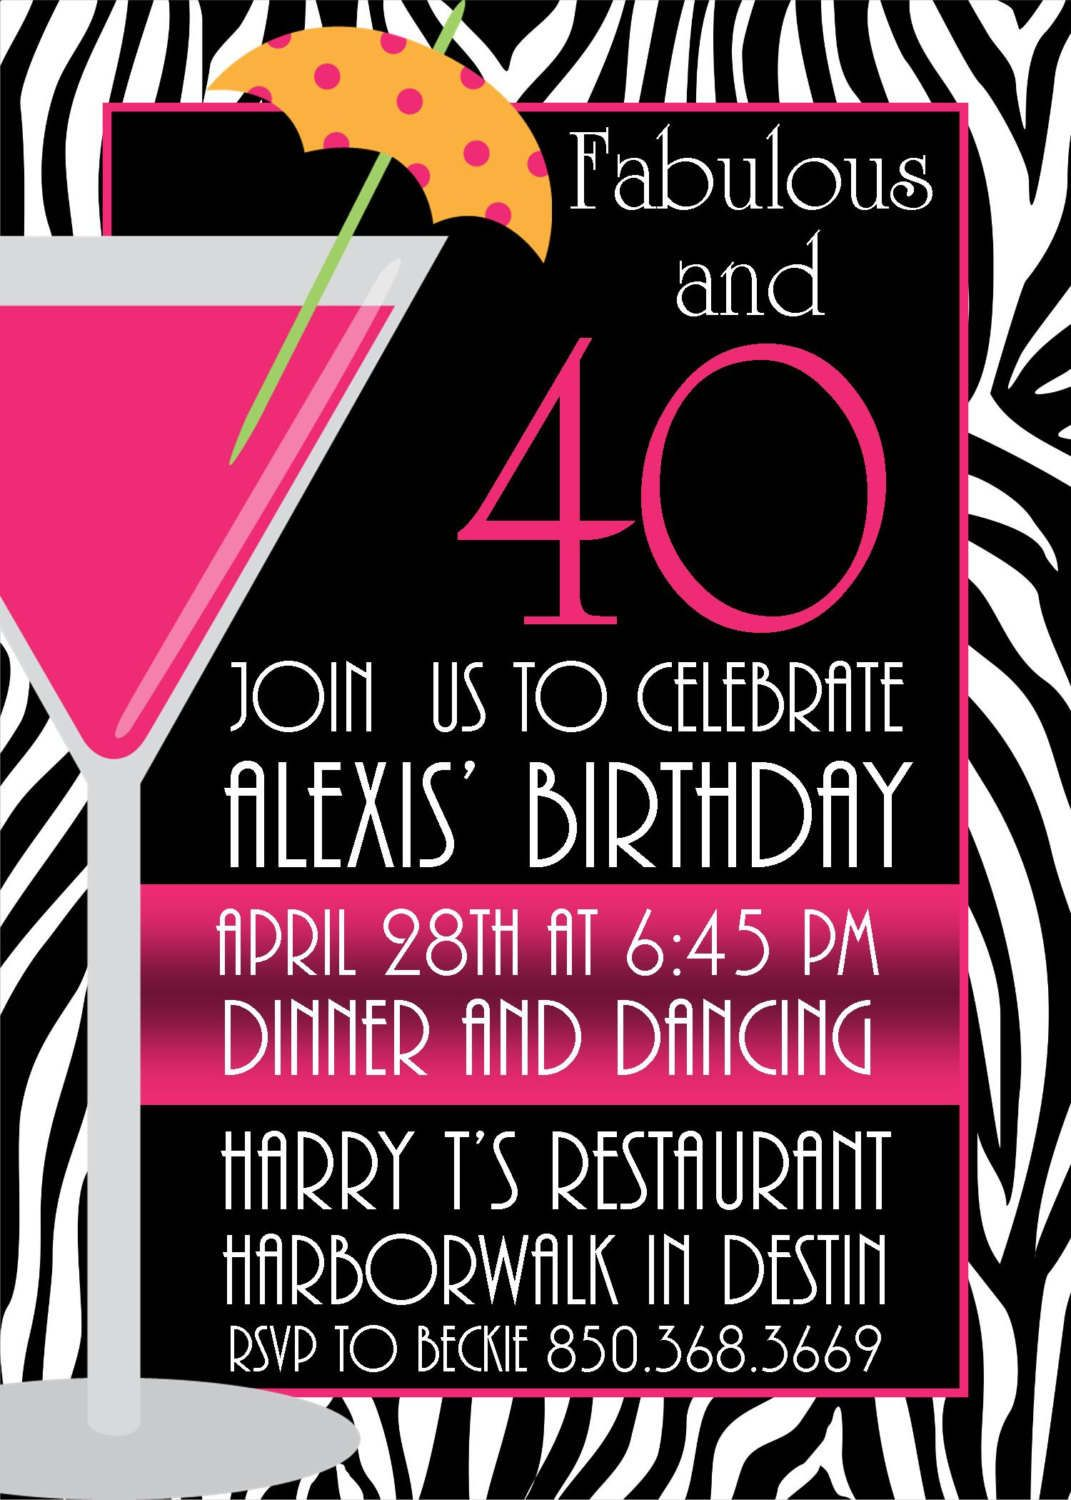 pictures of stylish women for 40th birthday invitation free